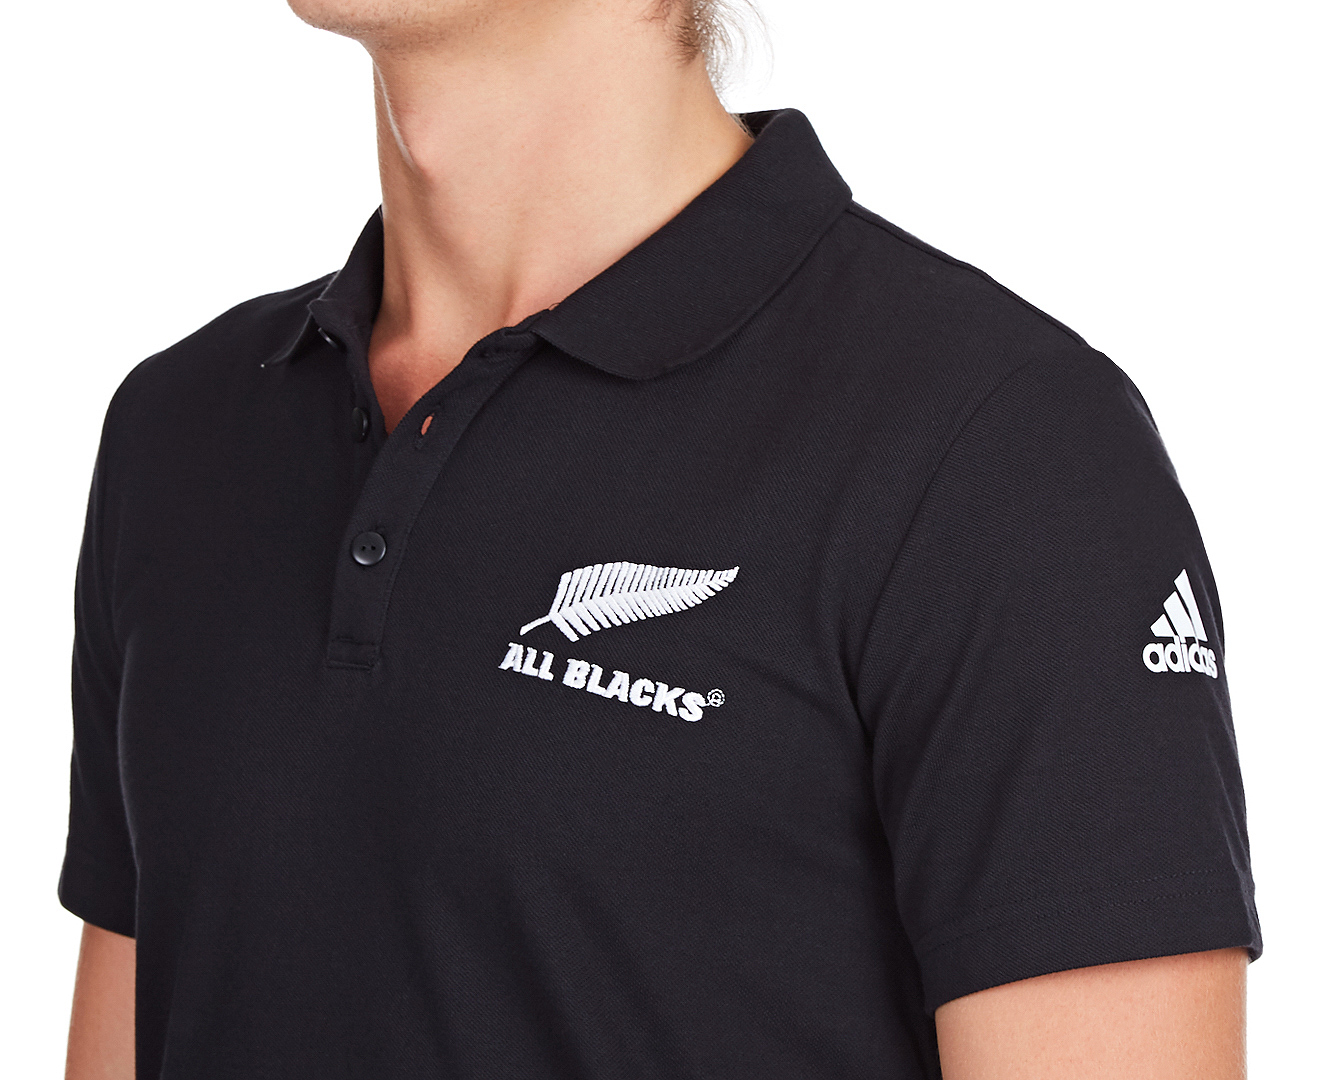 adidas men 39 s all blacks essentials polo black great daily deals at australia 39 s favourite. Black Bedroom Furniture Sets. Home Design Ideas